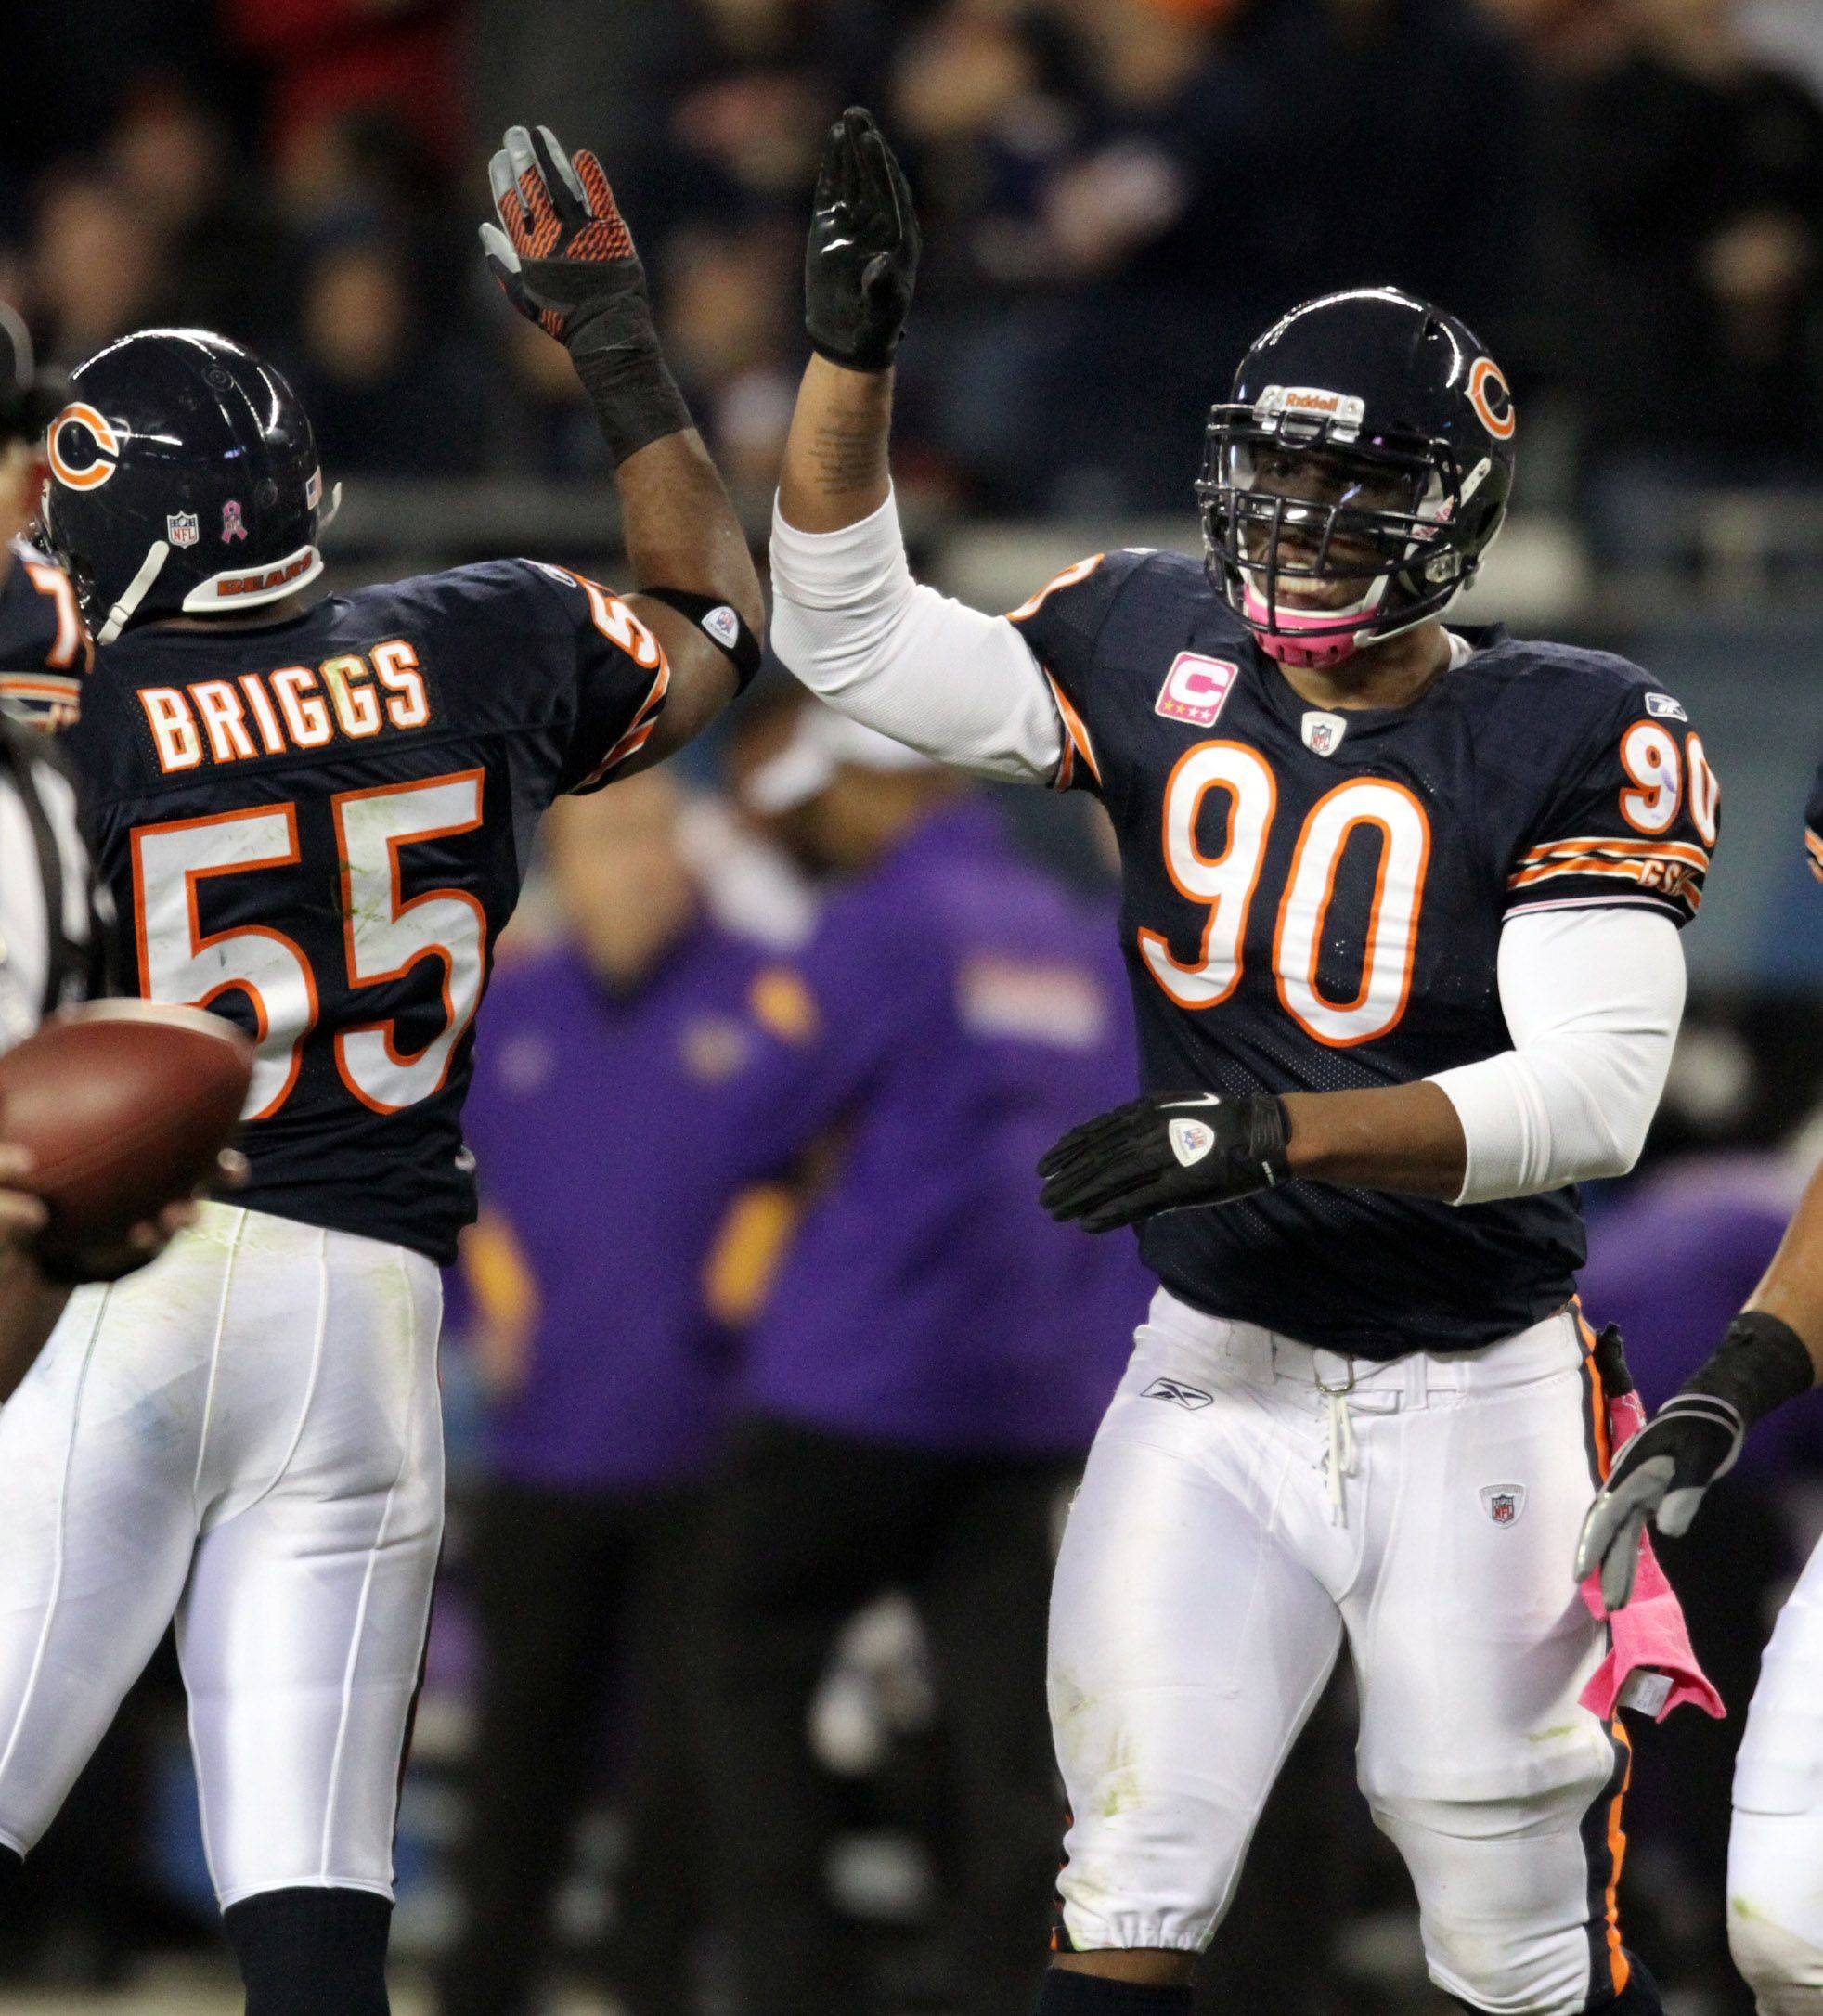 Bears gush over Peppers' amazing play of late